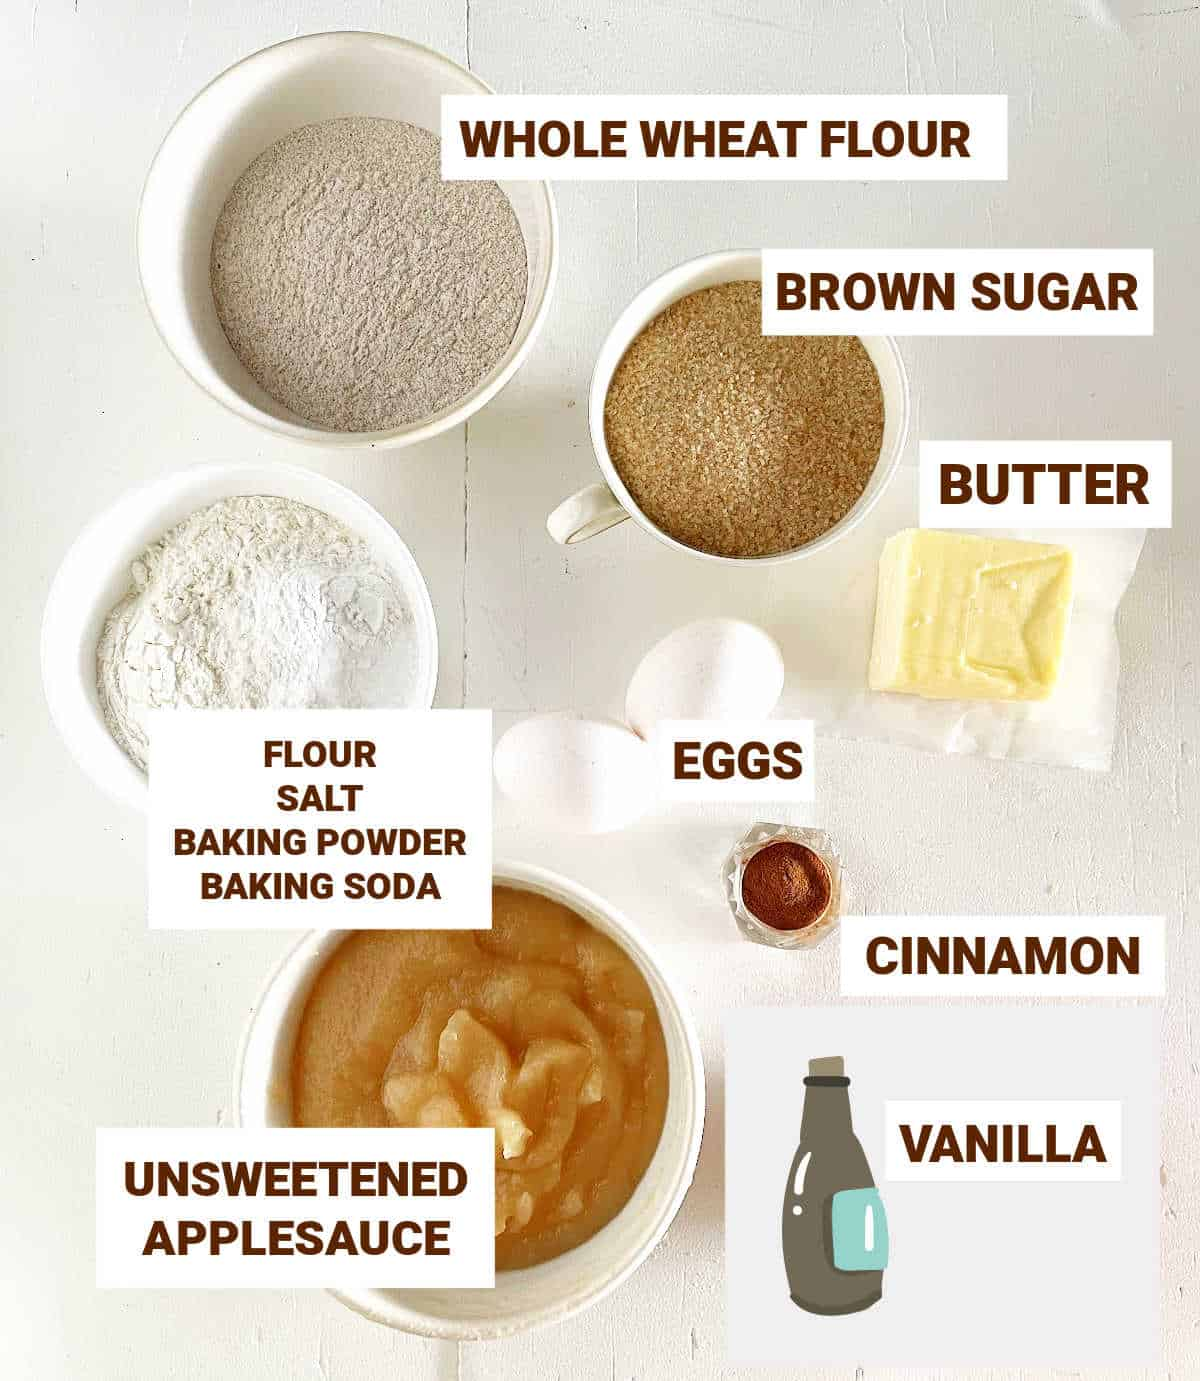 Bowls with ingredients for applesauce bread on white surface including butter, flours, brown sugar, eggs, cinnamon